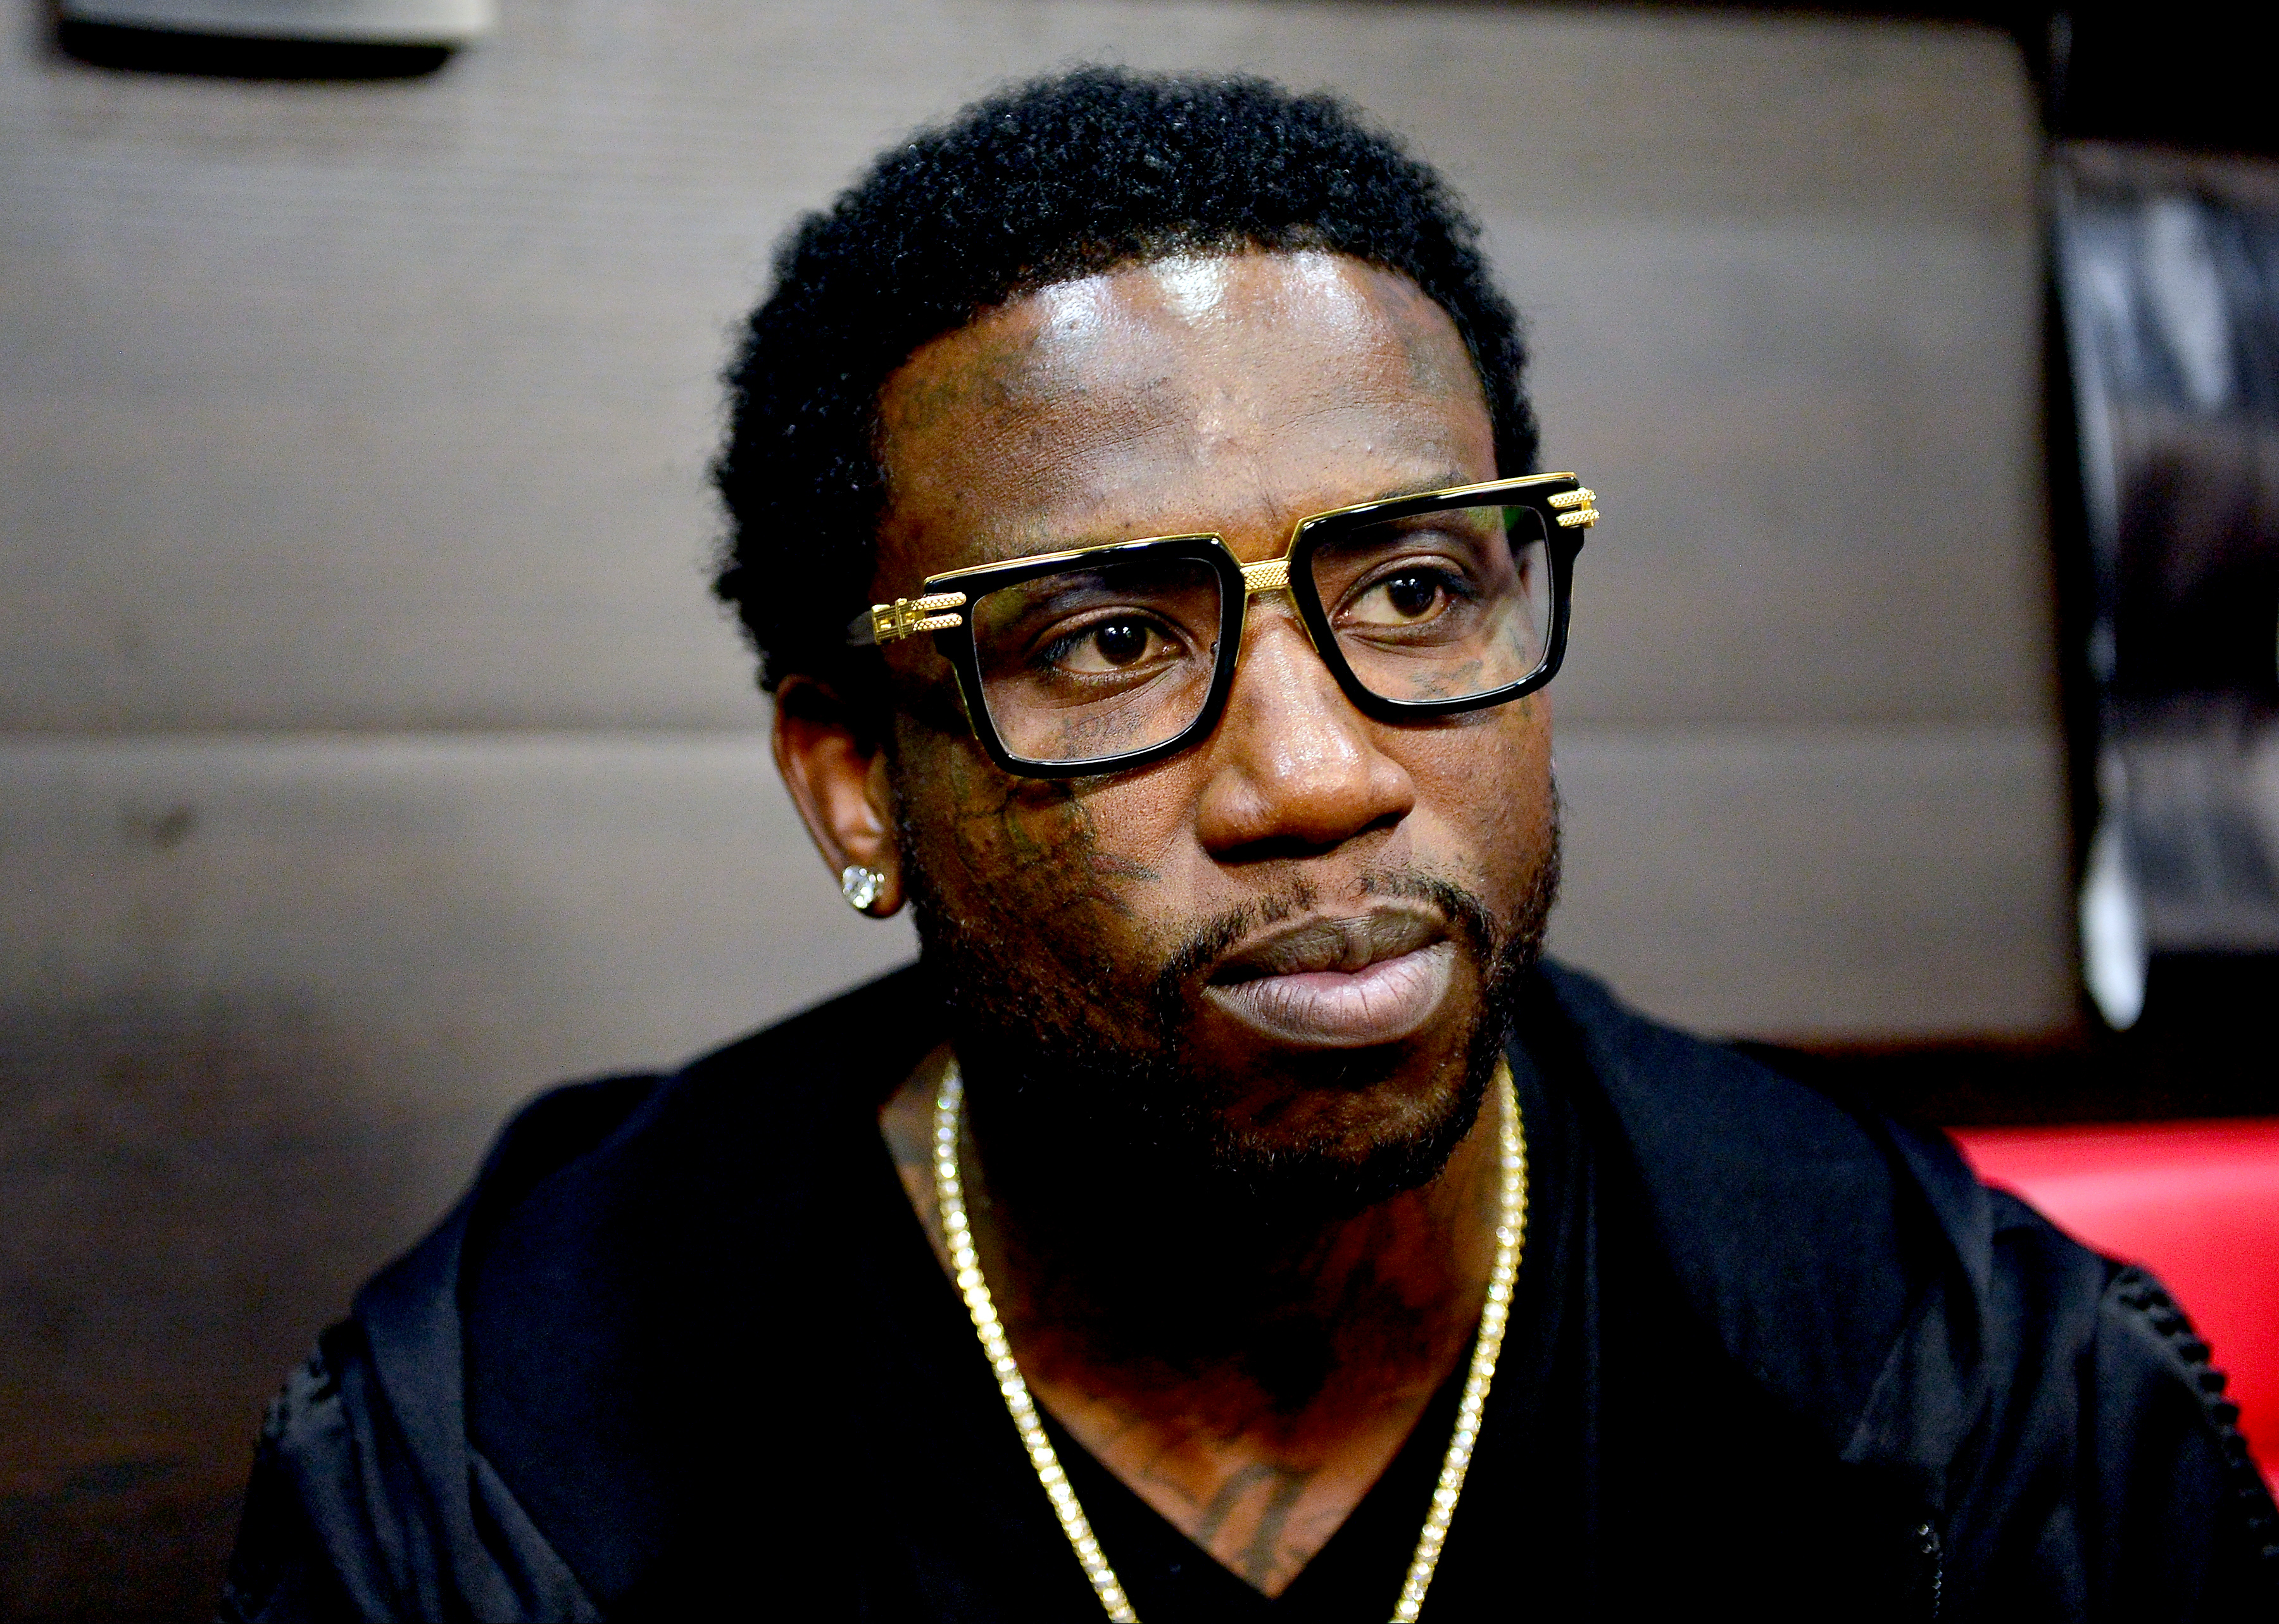 Gucci Mane Meets And Greets Fans